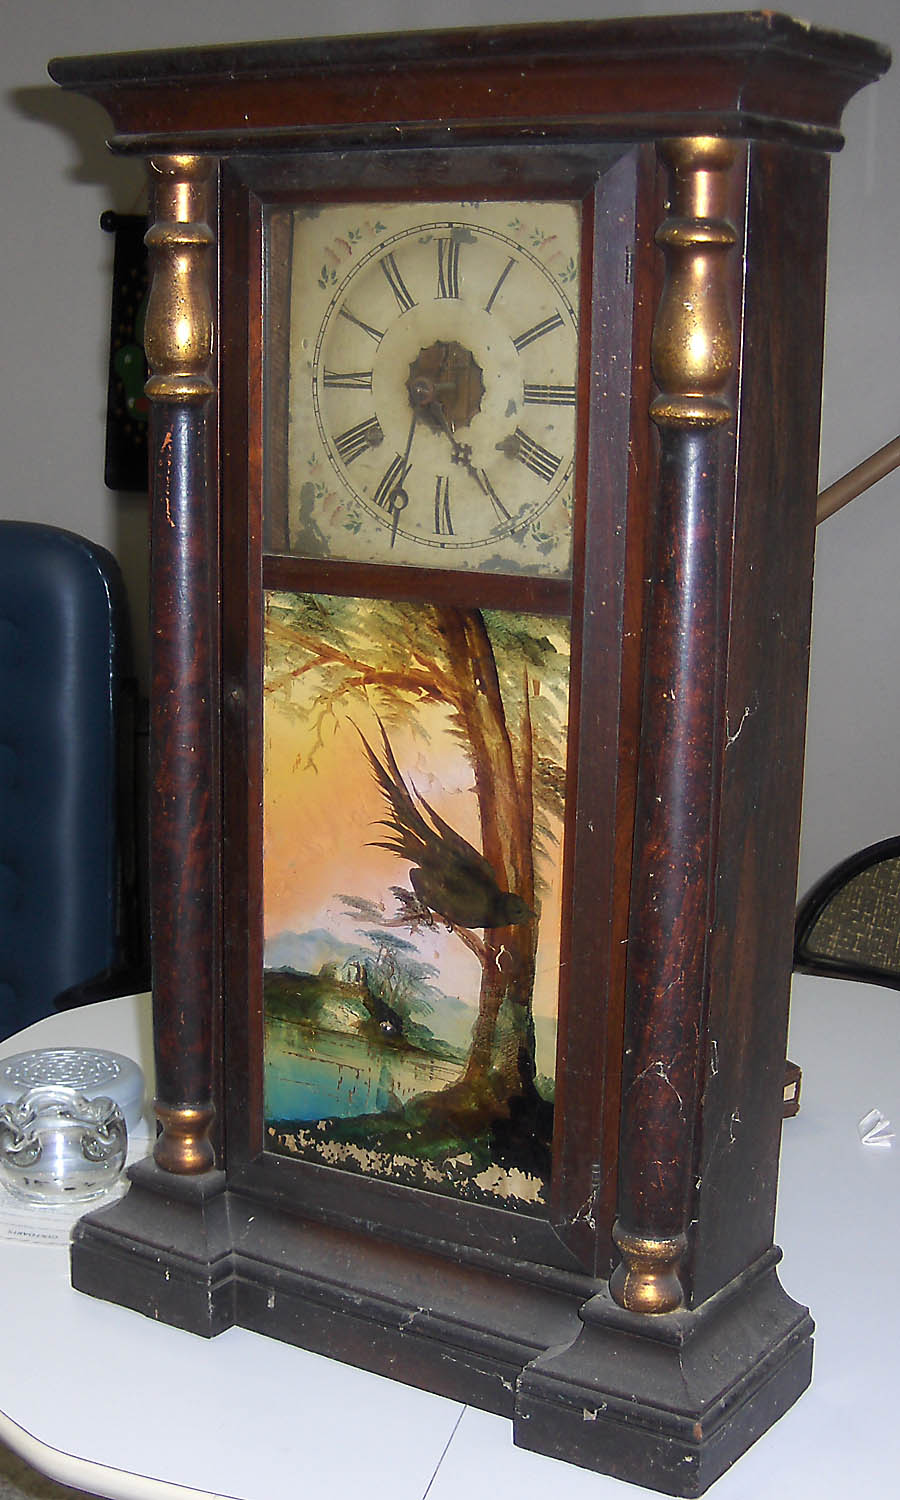 S.C. SPRING COLUMN AND CORNICE 8-DAY WEIGHT CLOCK